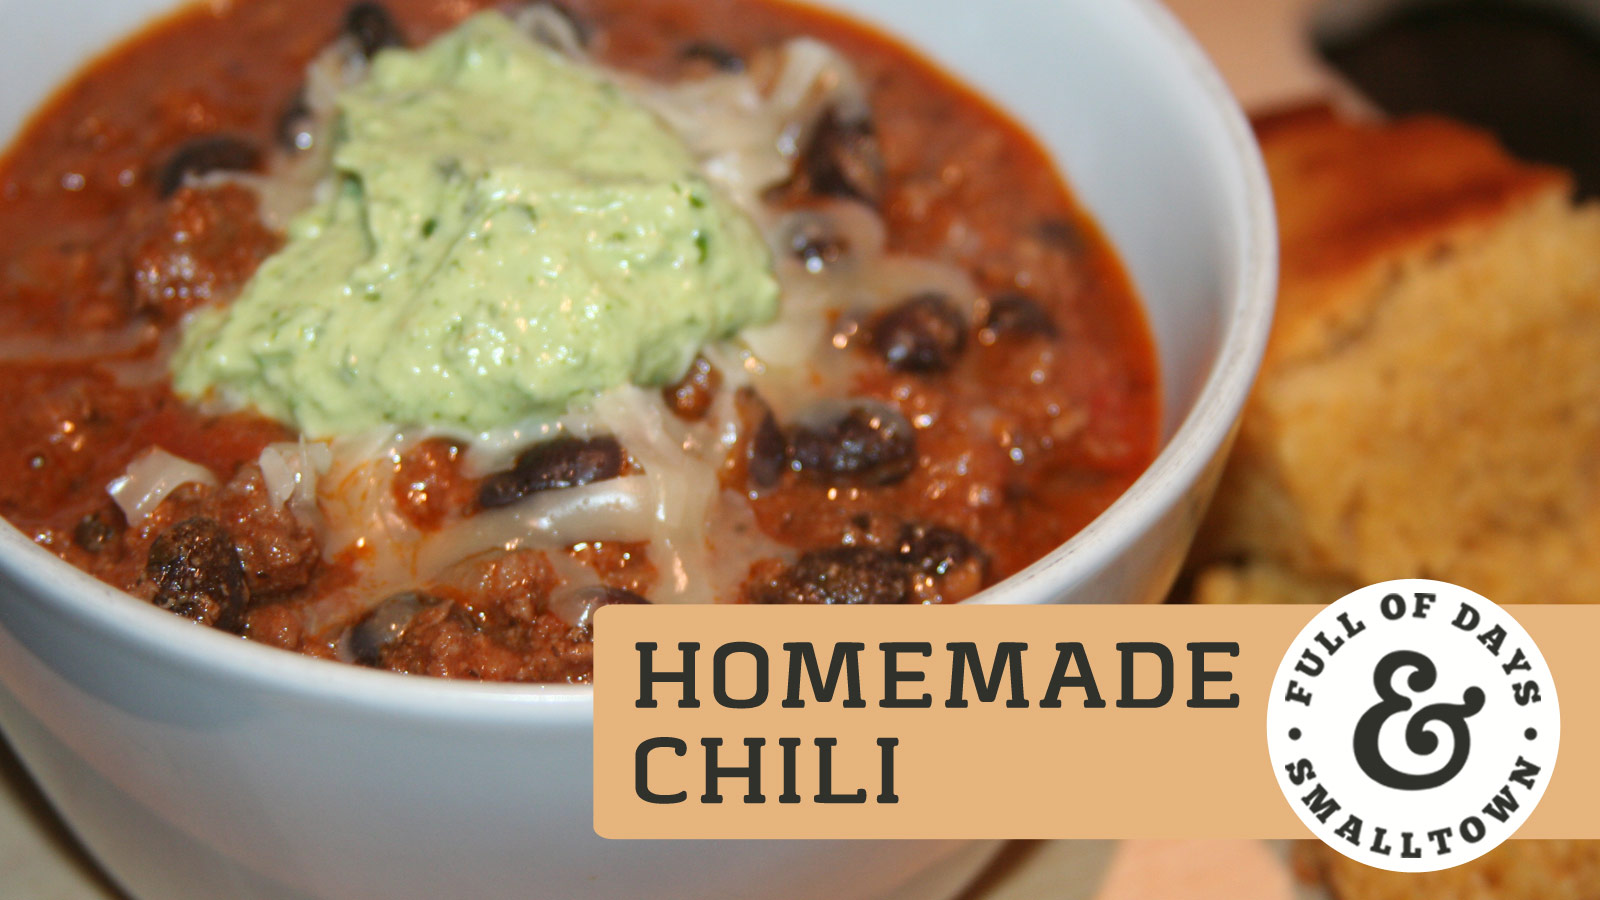 homemade-chili_full-of-days_1600-x-900